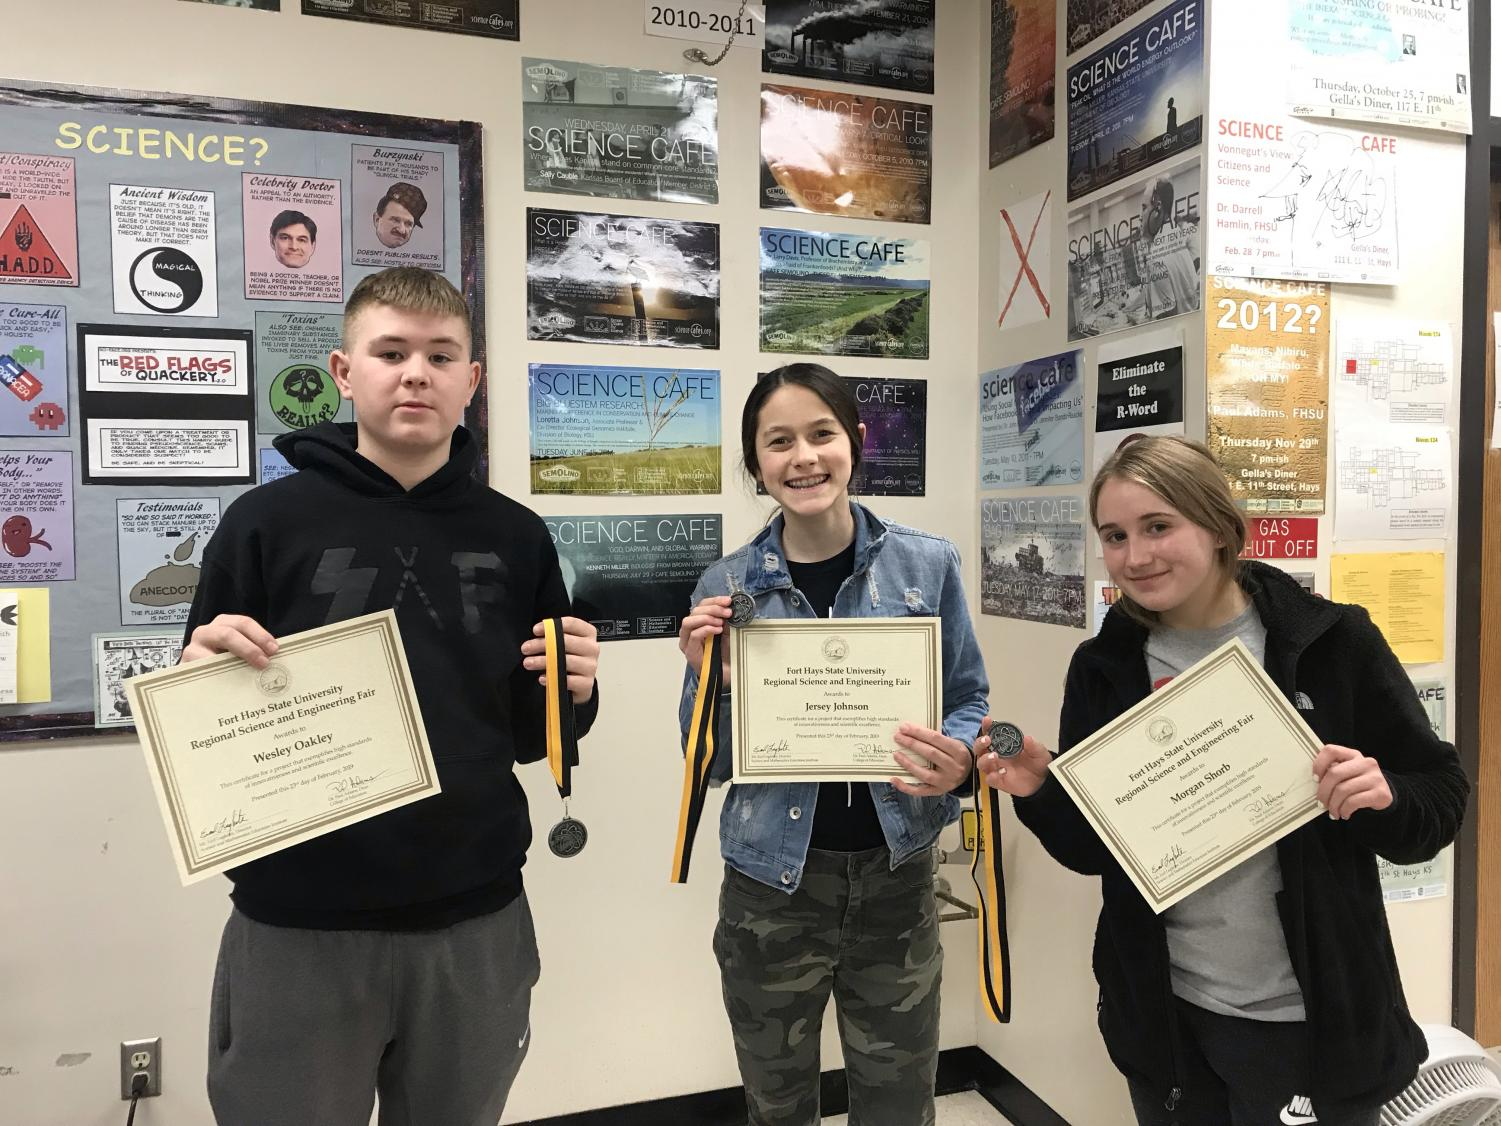 Students awarded received a medal and certificate. Science fair awards were announced on Feb 28.